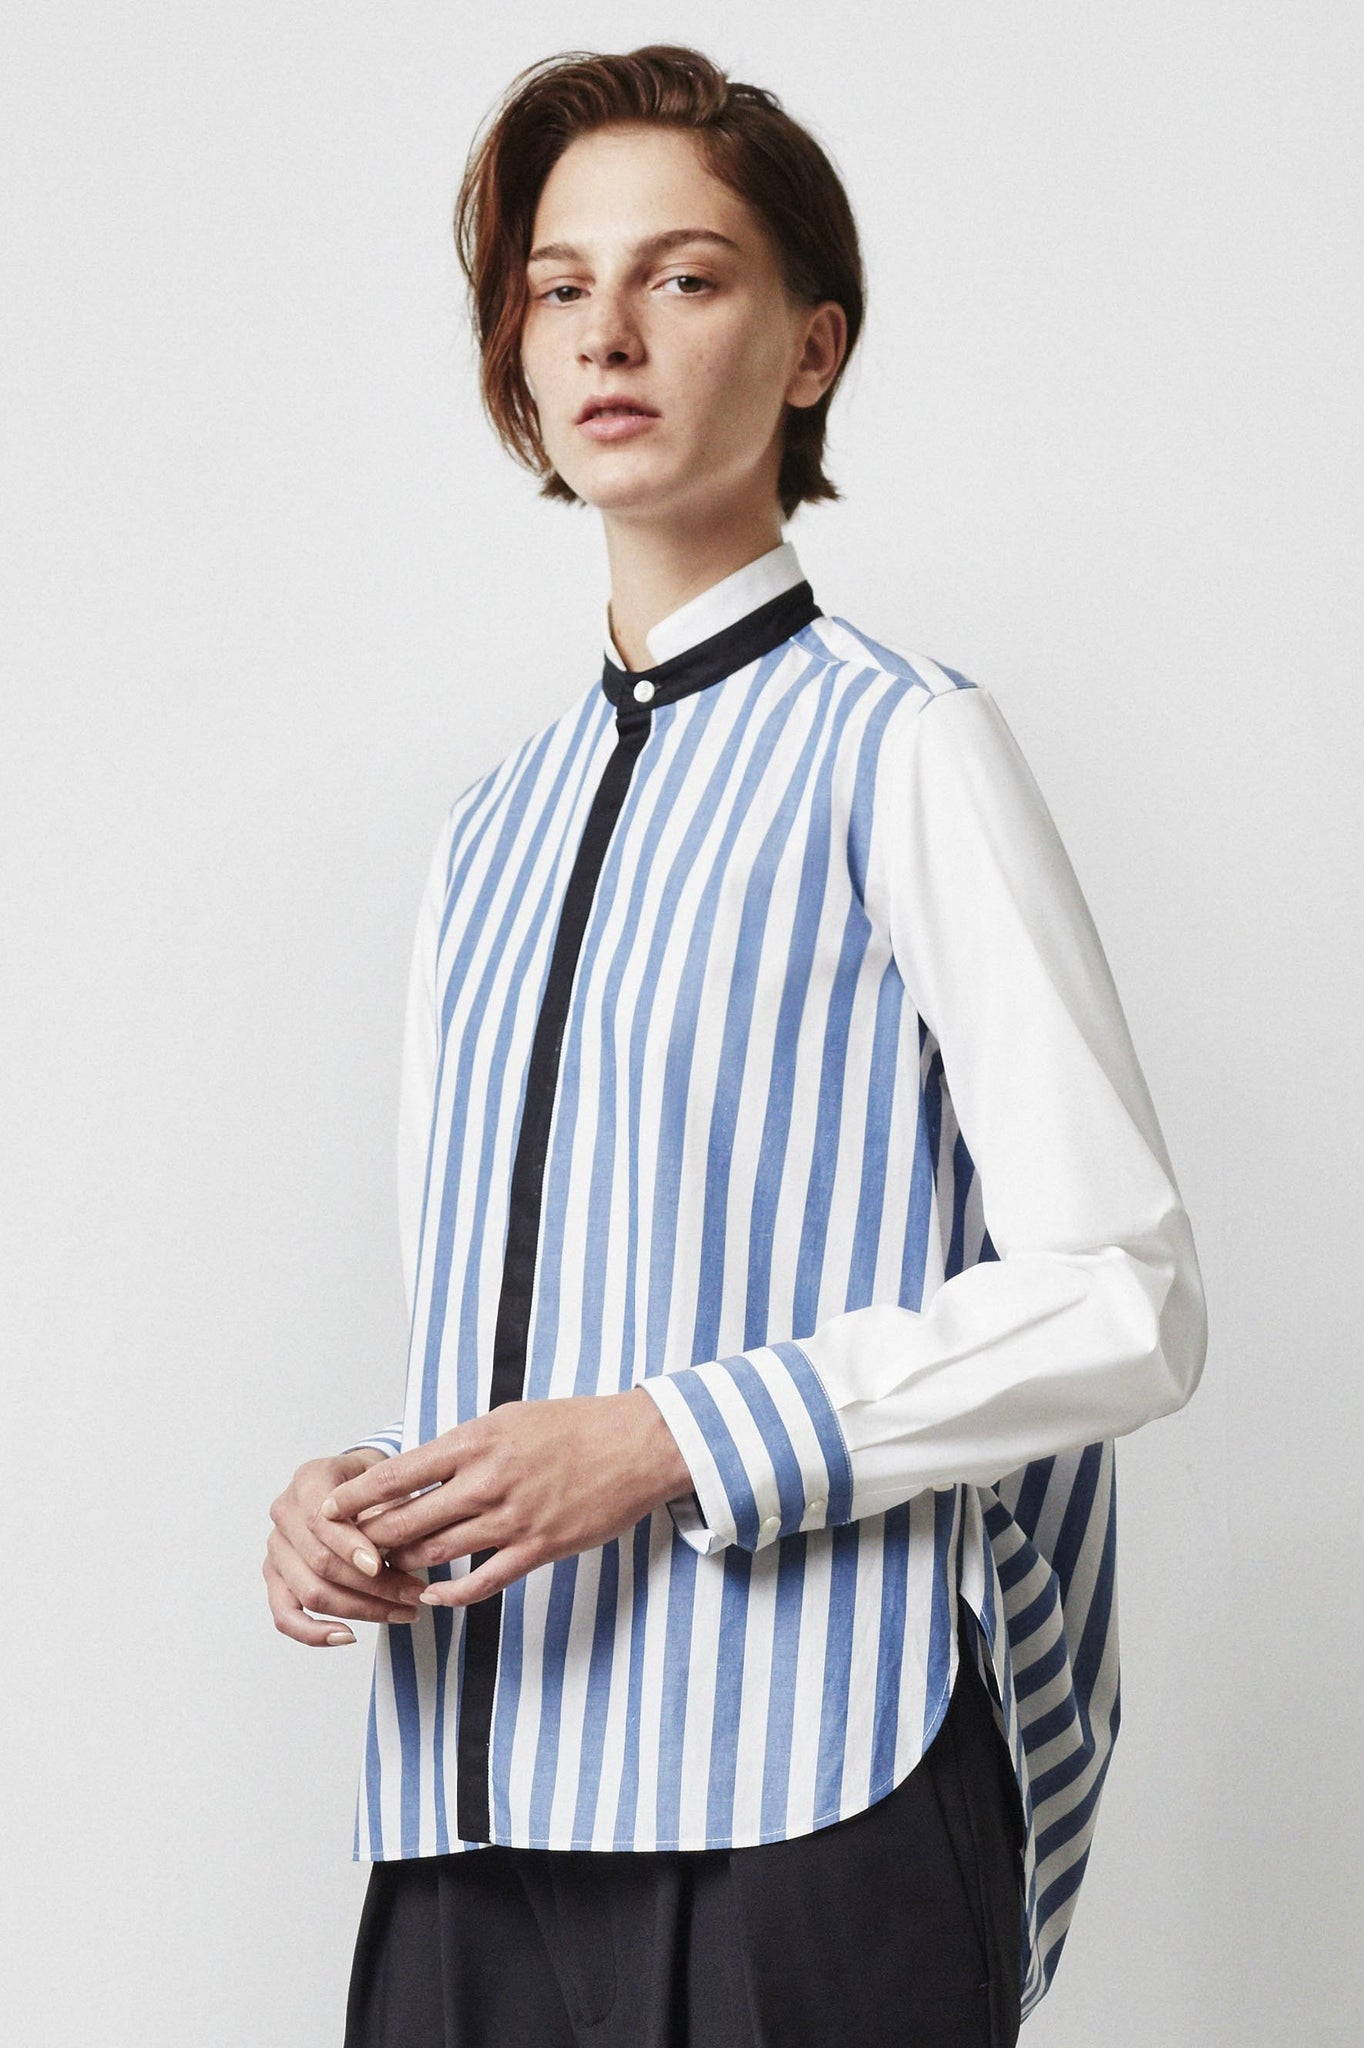 Viktor Contrasted Stripe Shirt